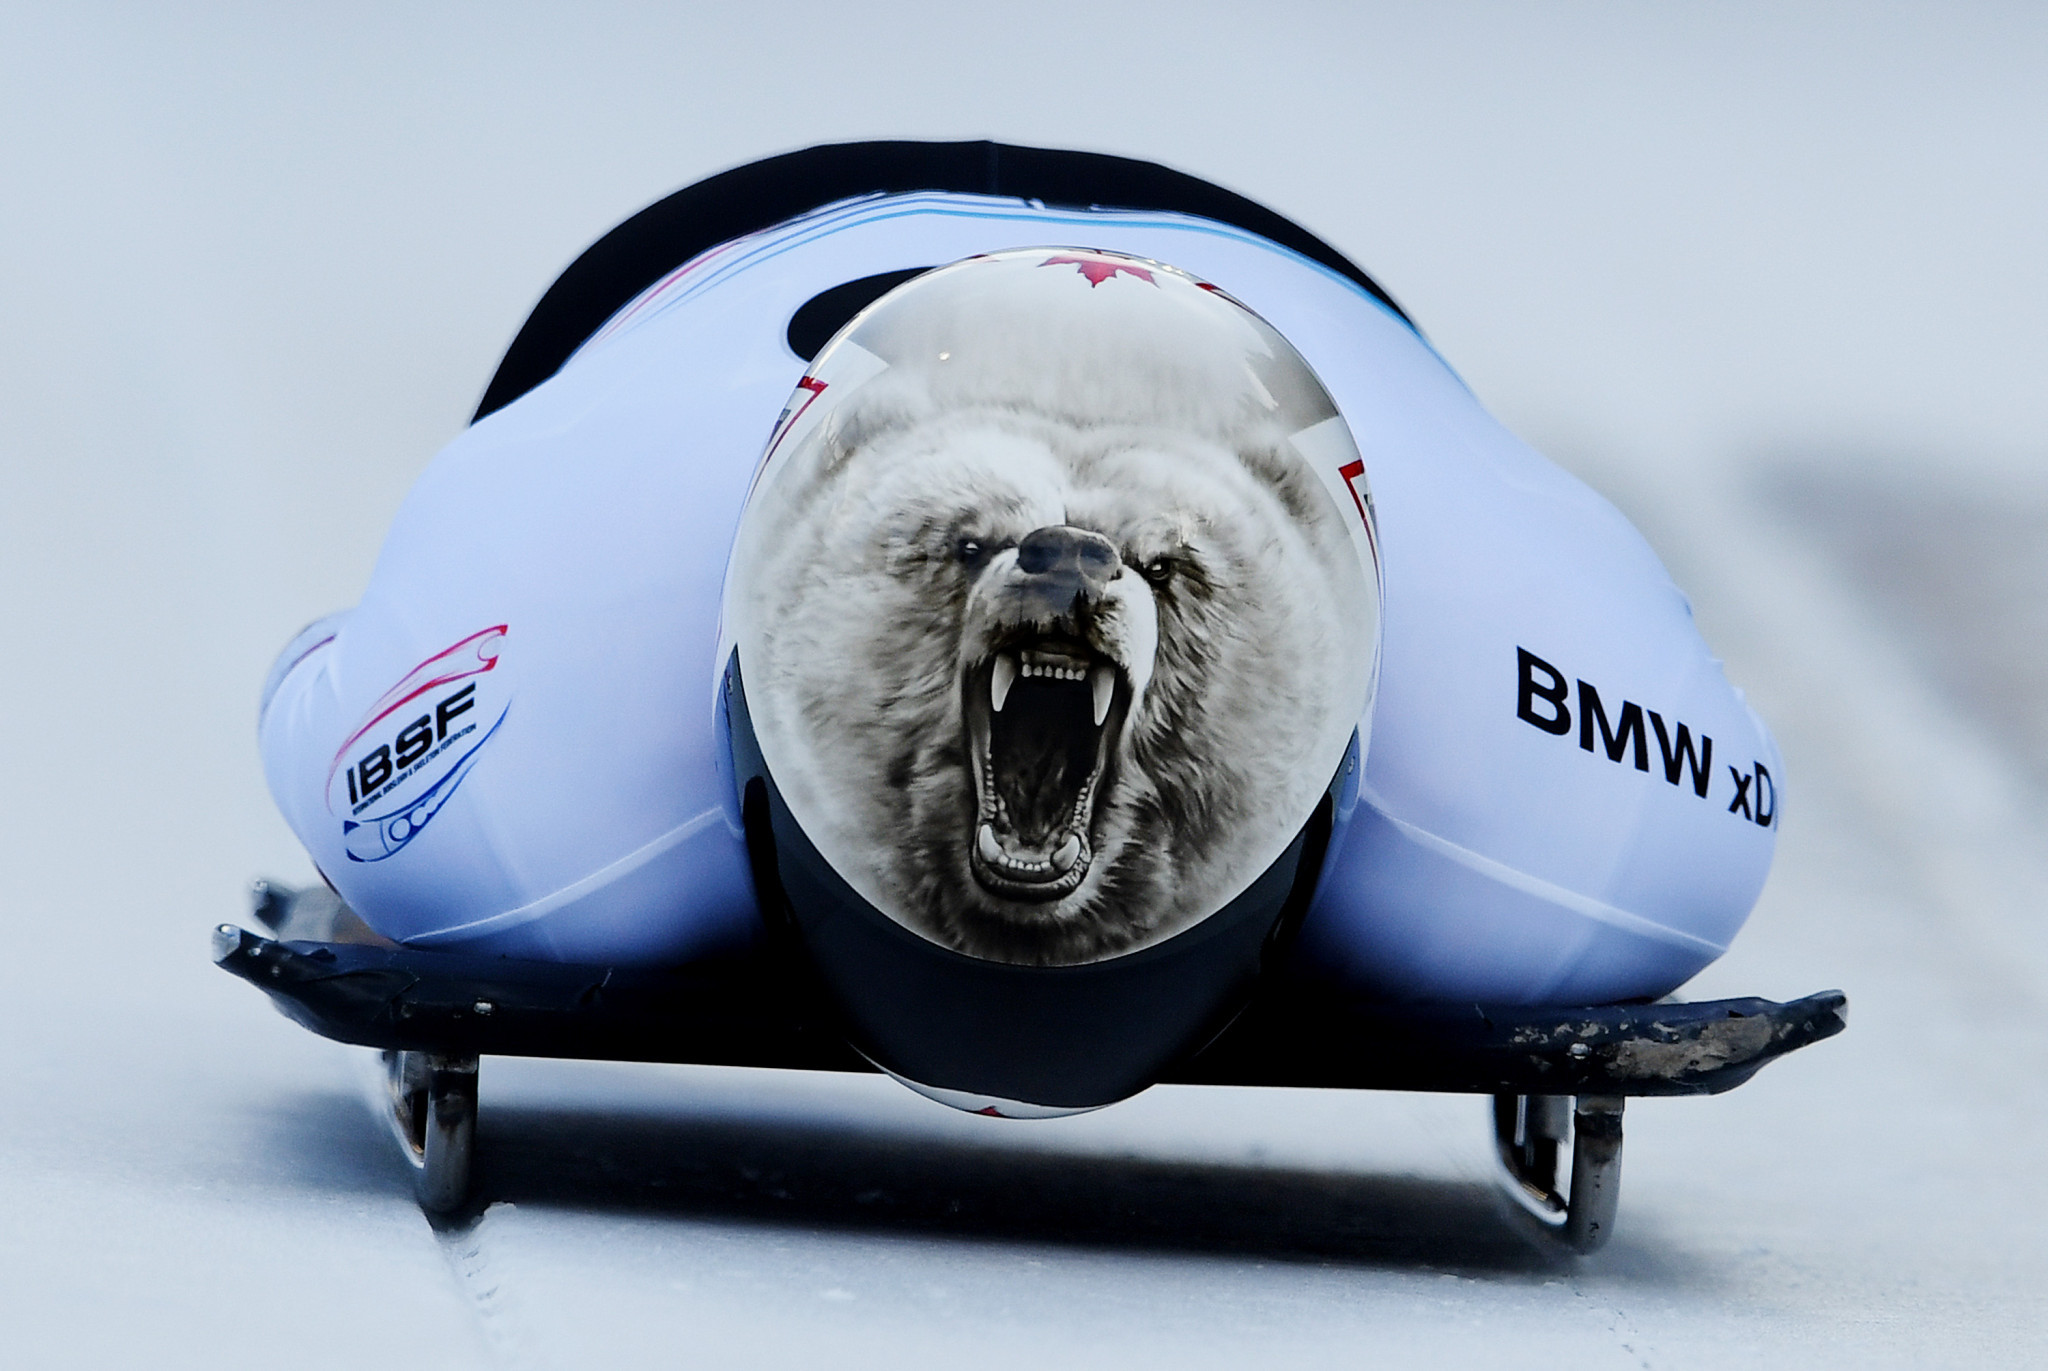 IBSF World Cup finale to be held in Innsbruck before World Championships